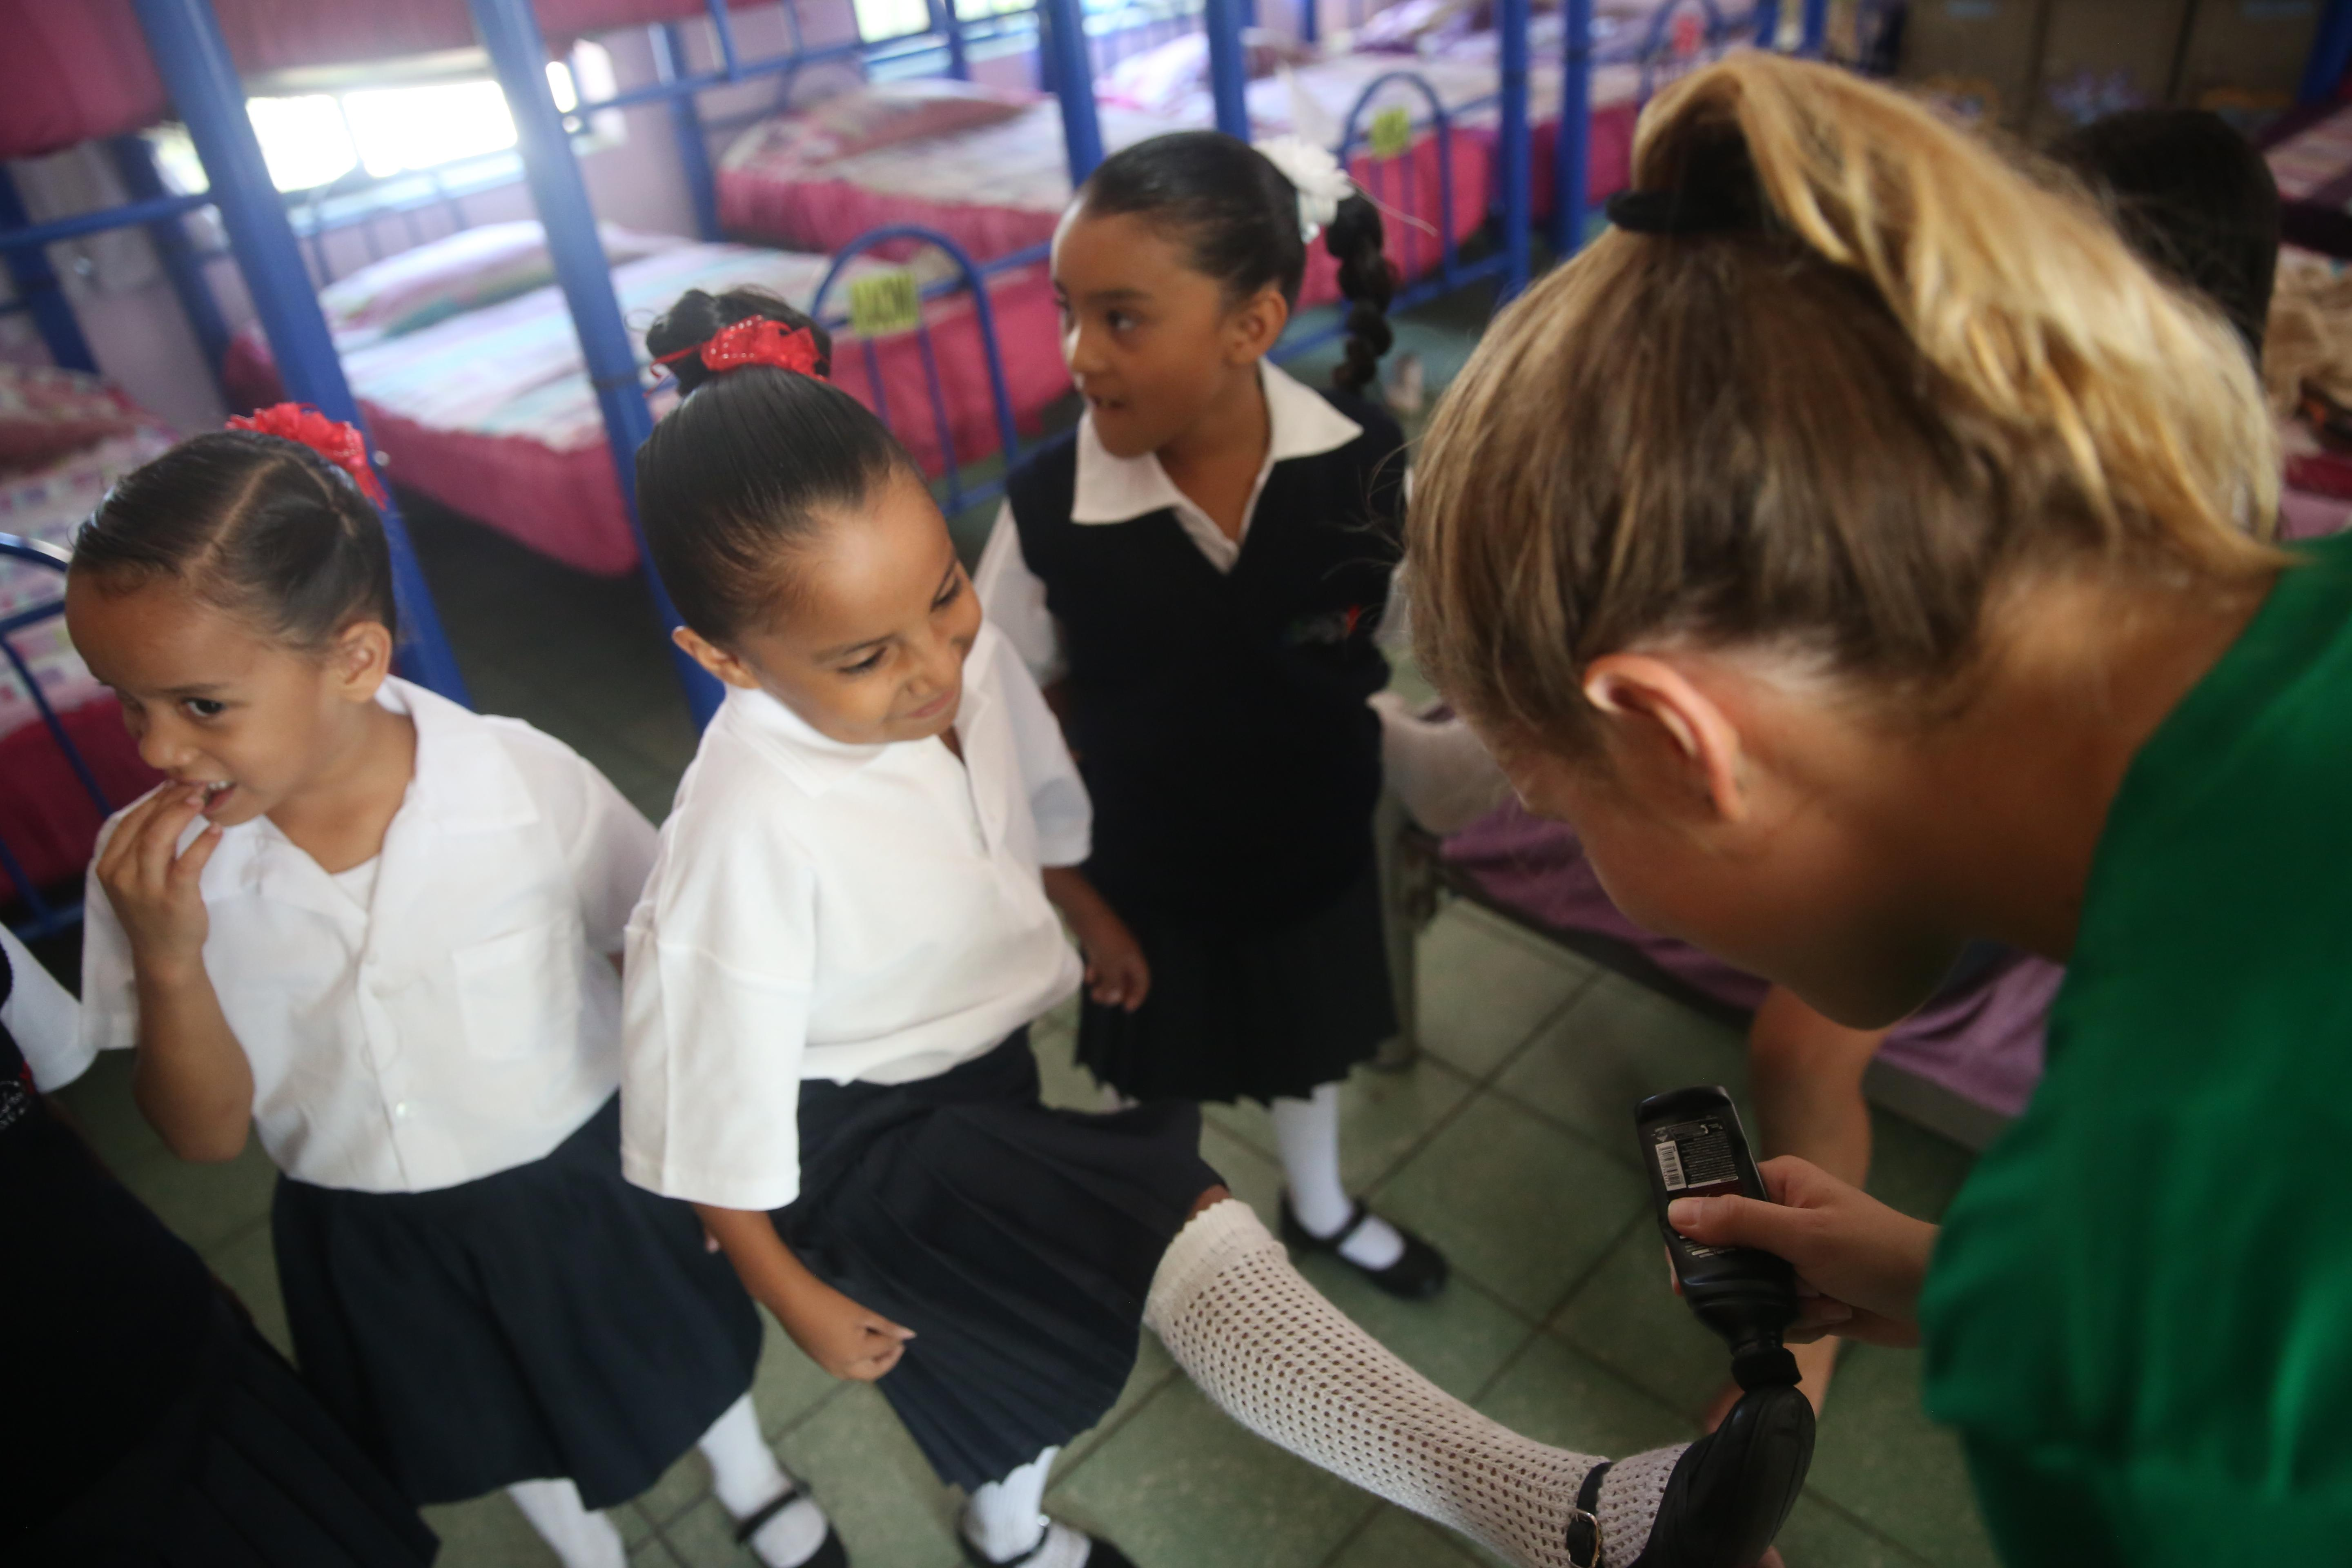 Projects Abroad volunteer working with children in Mexico polishes a young girl's shoes at her Childcare placement.